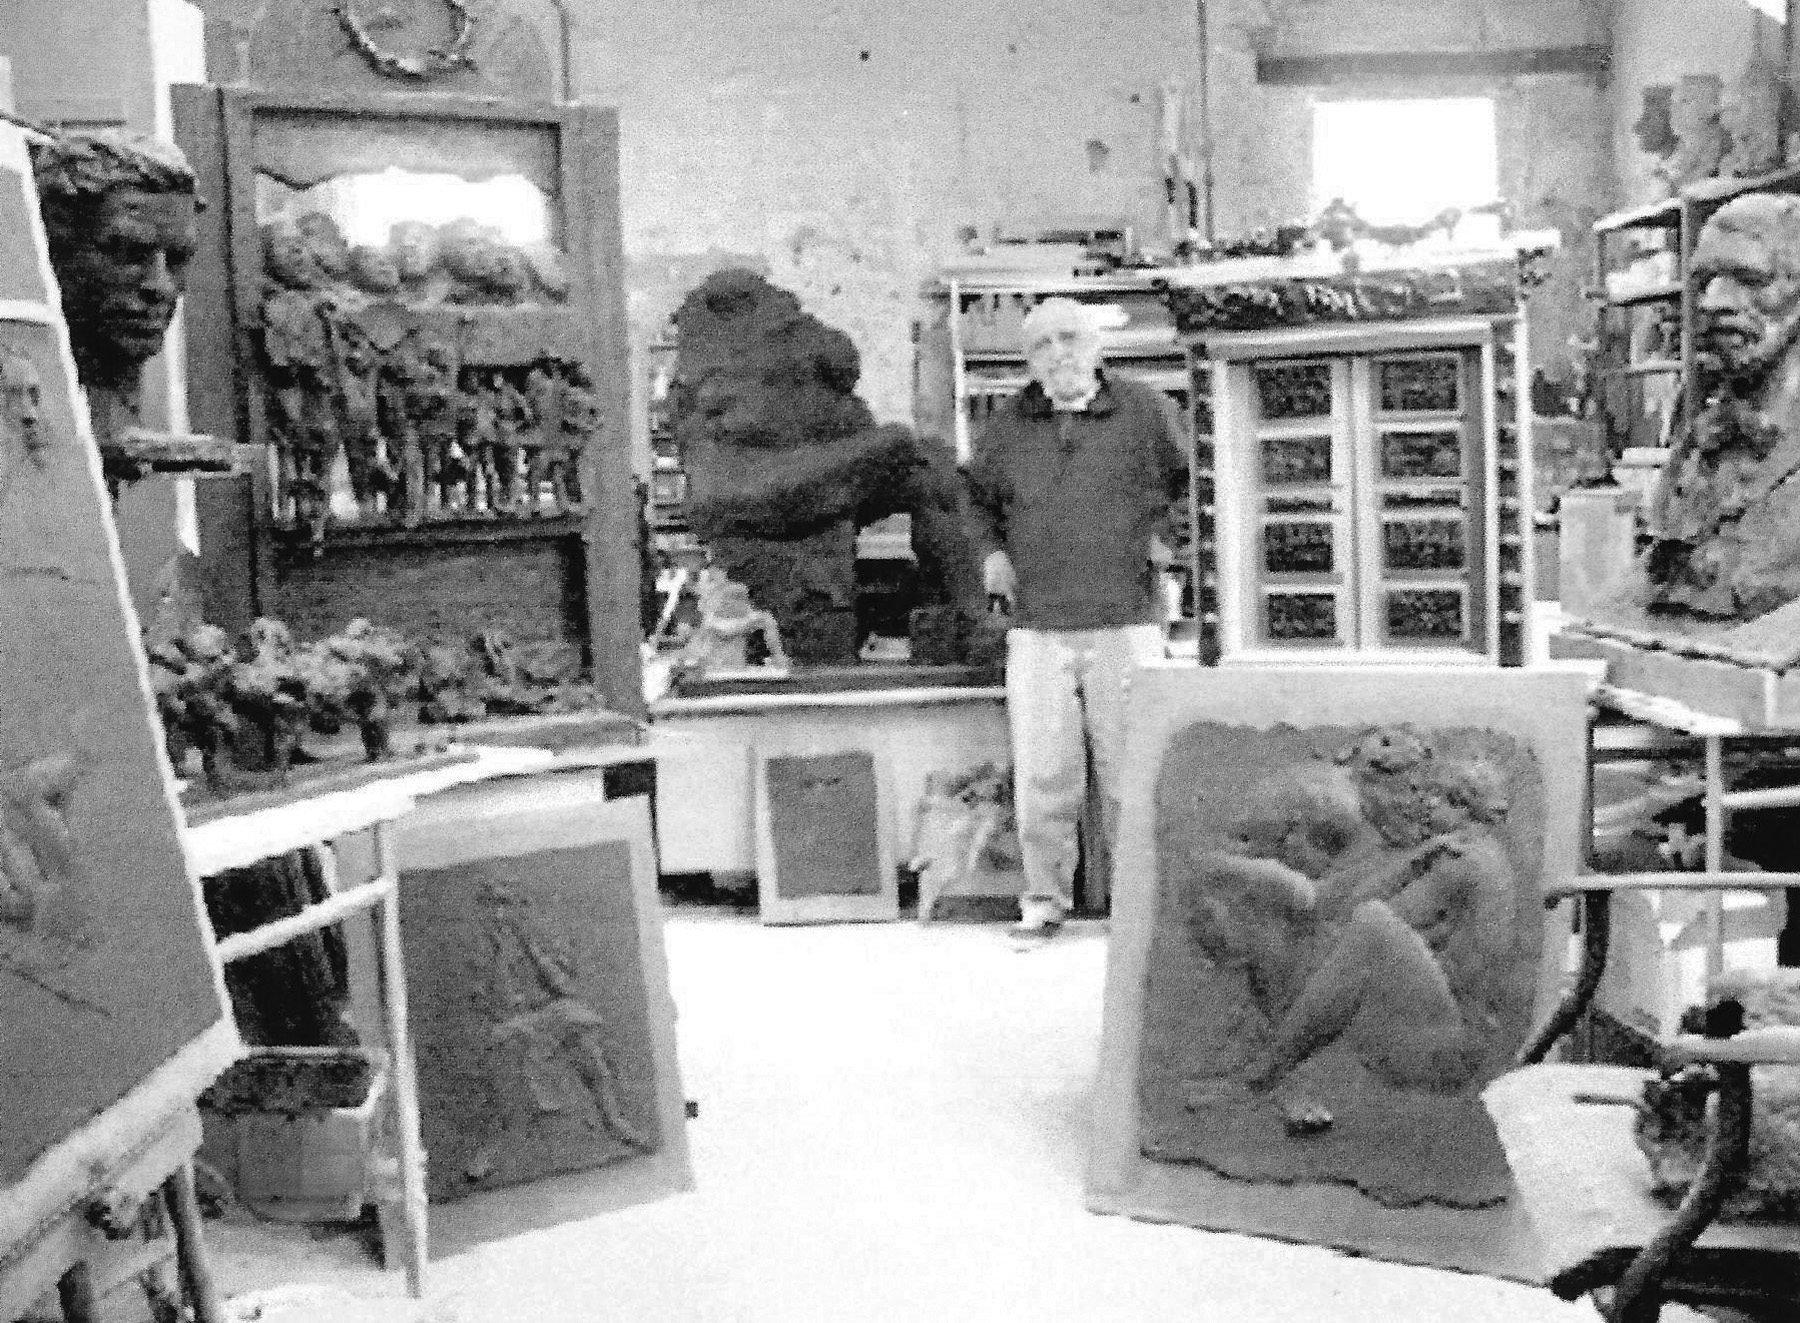 John Nick Pappas, Sculptor, In His Studio image